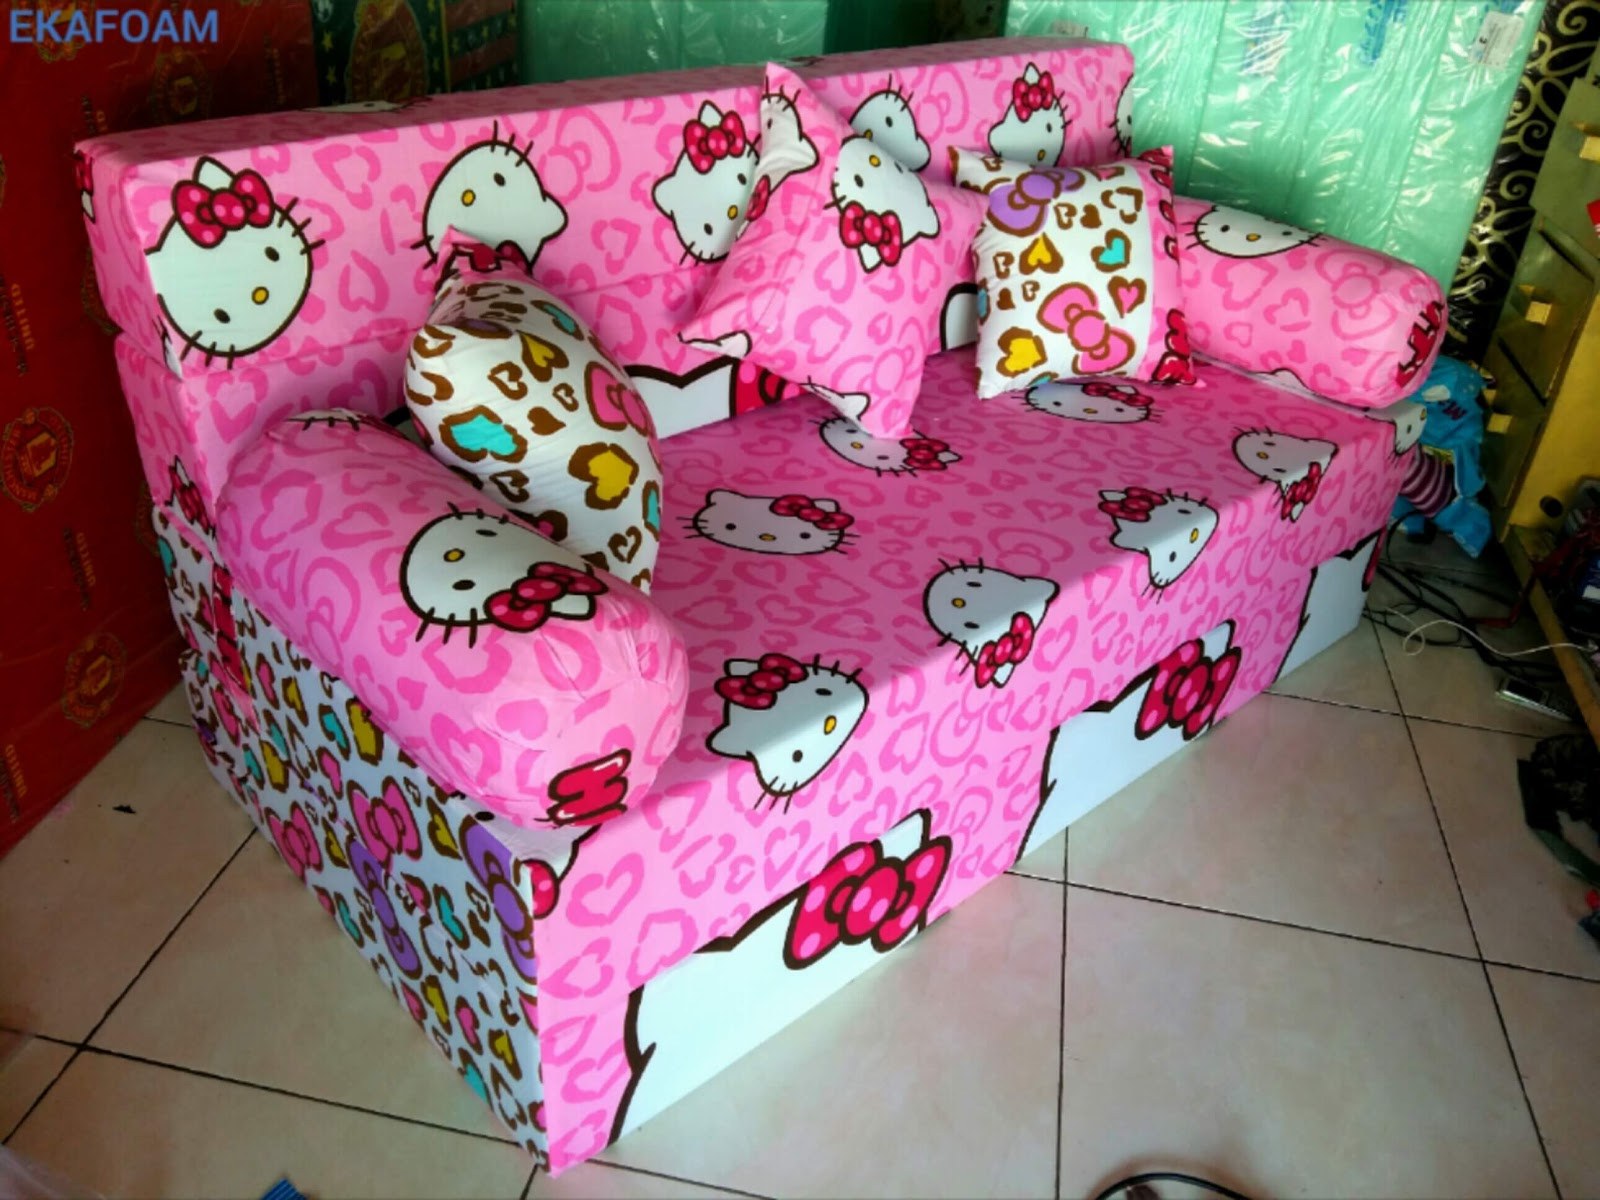 SOFA BED INOAC HELLO KITTY PITA AGEN RESMI KASUR BUSA INOAC